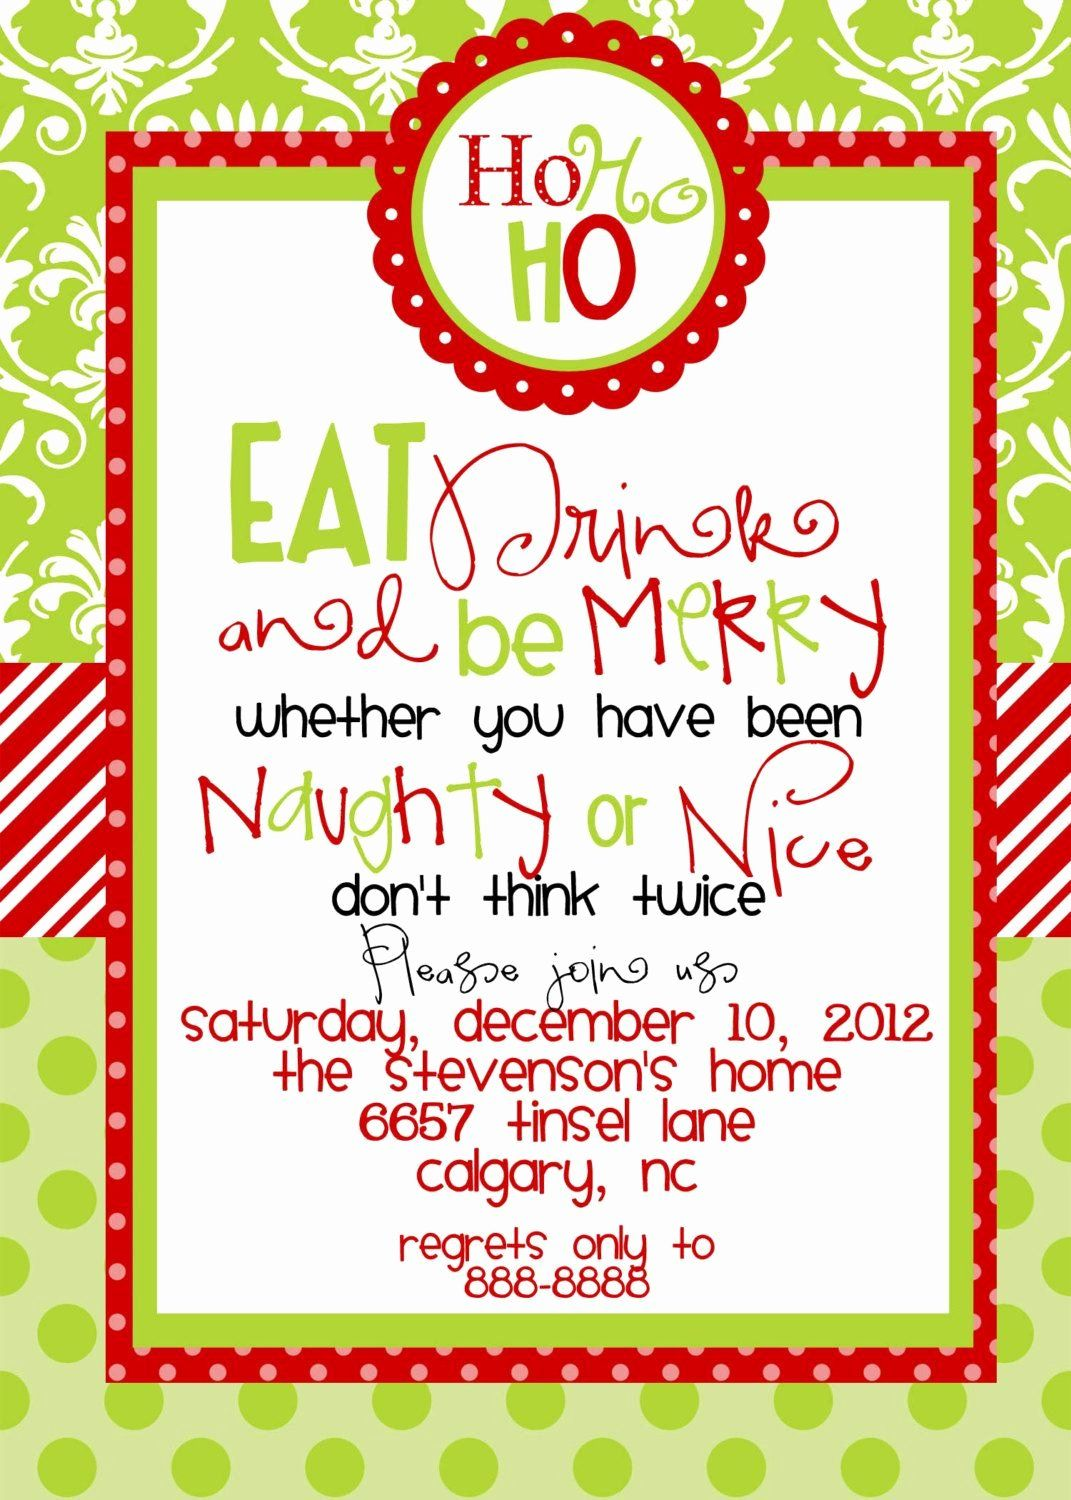 Free Christmas Party Invitations Template Elegant Ch Christmas Party Invitation Wording Free Christmas Invitation Templates Christmas Party Invitation Template